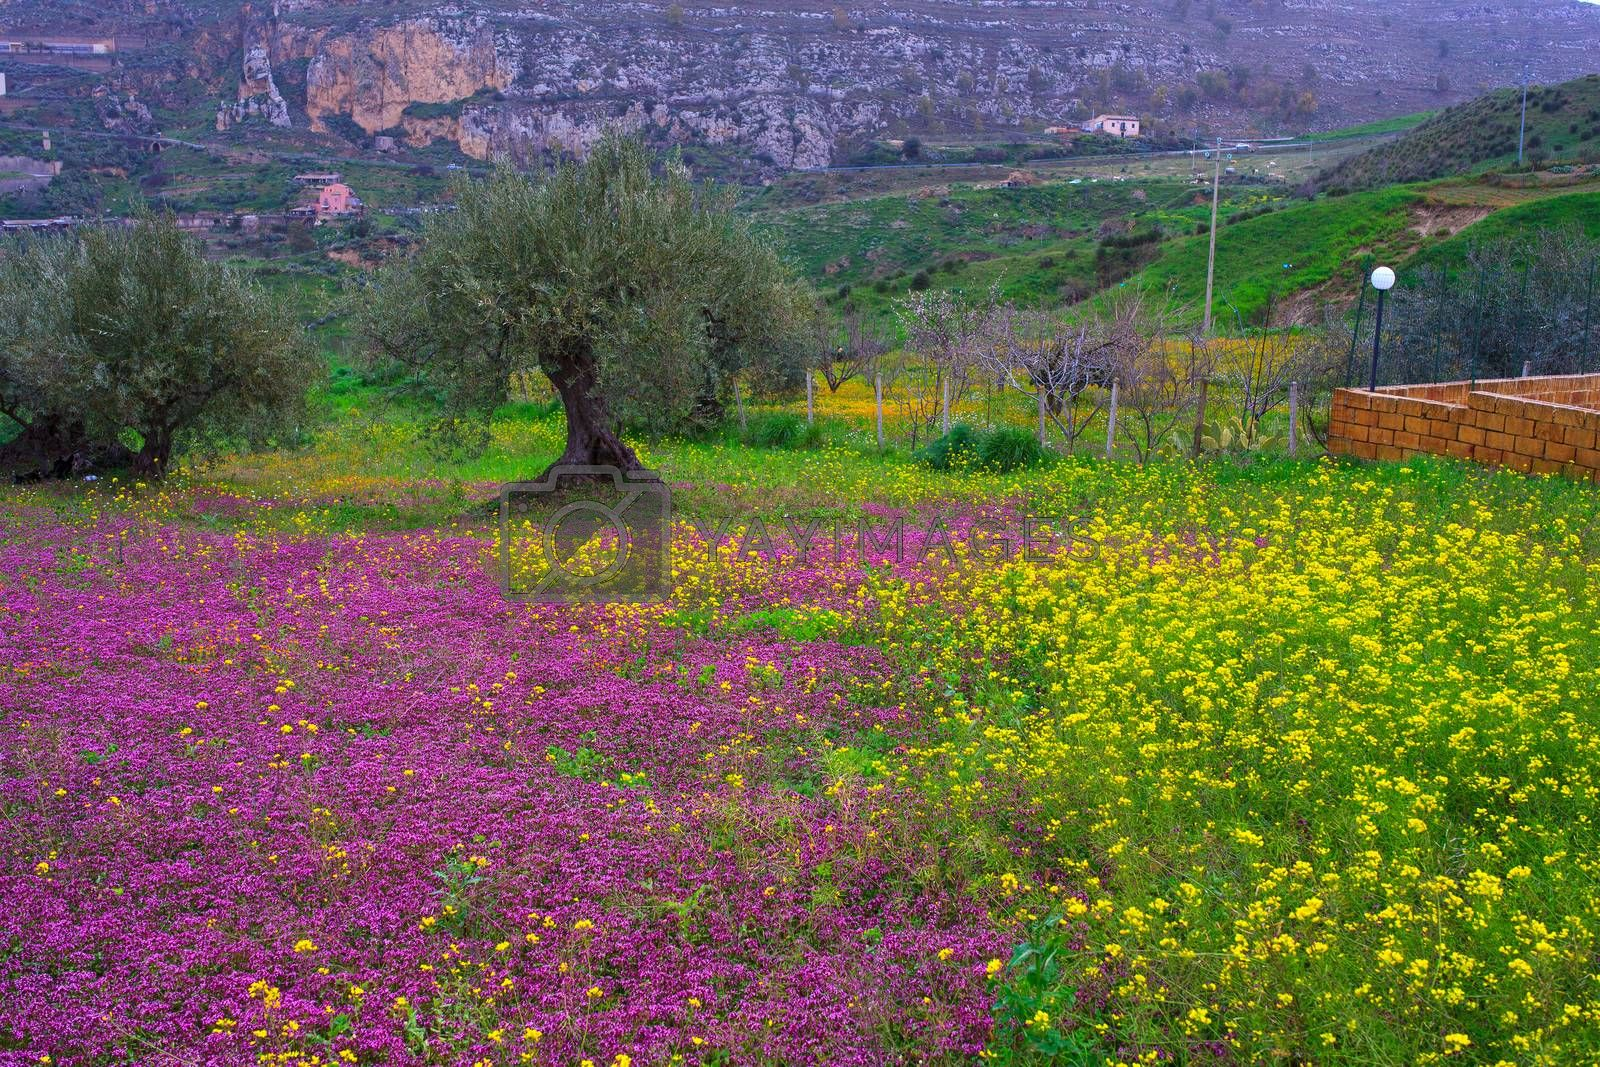 View of Sicilian countryside in the spring season, Olive trees and colorful flowers